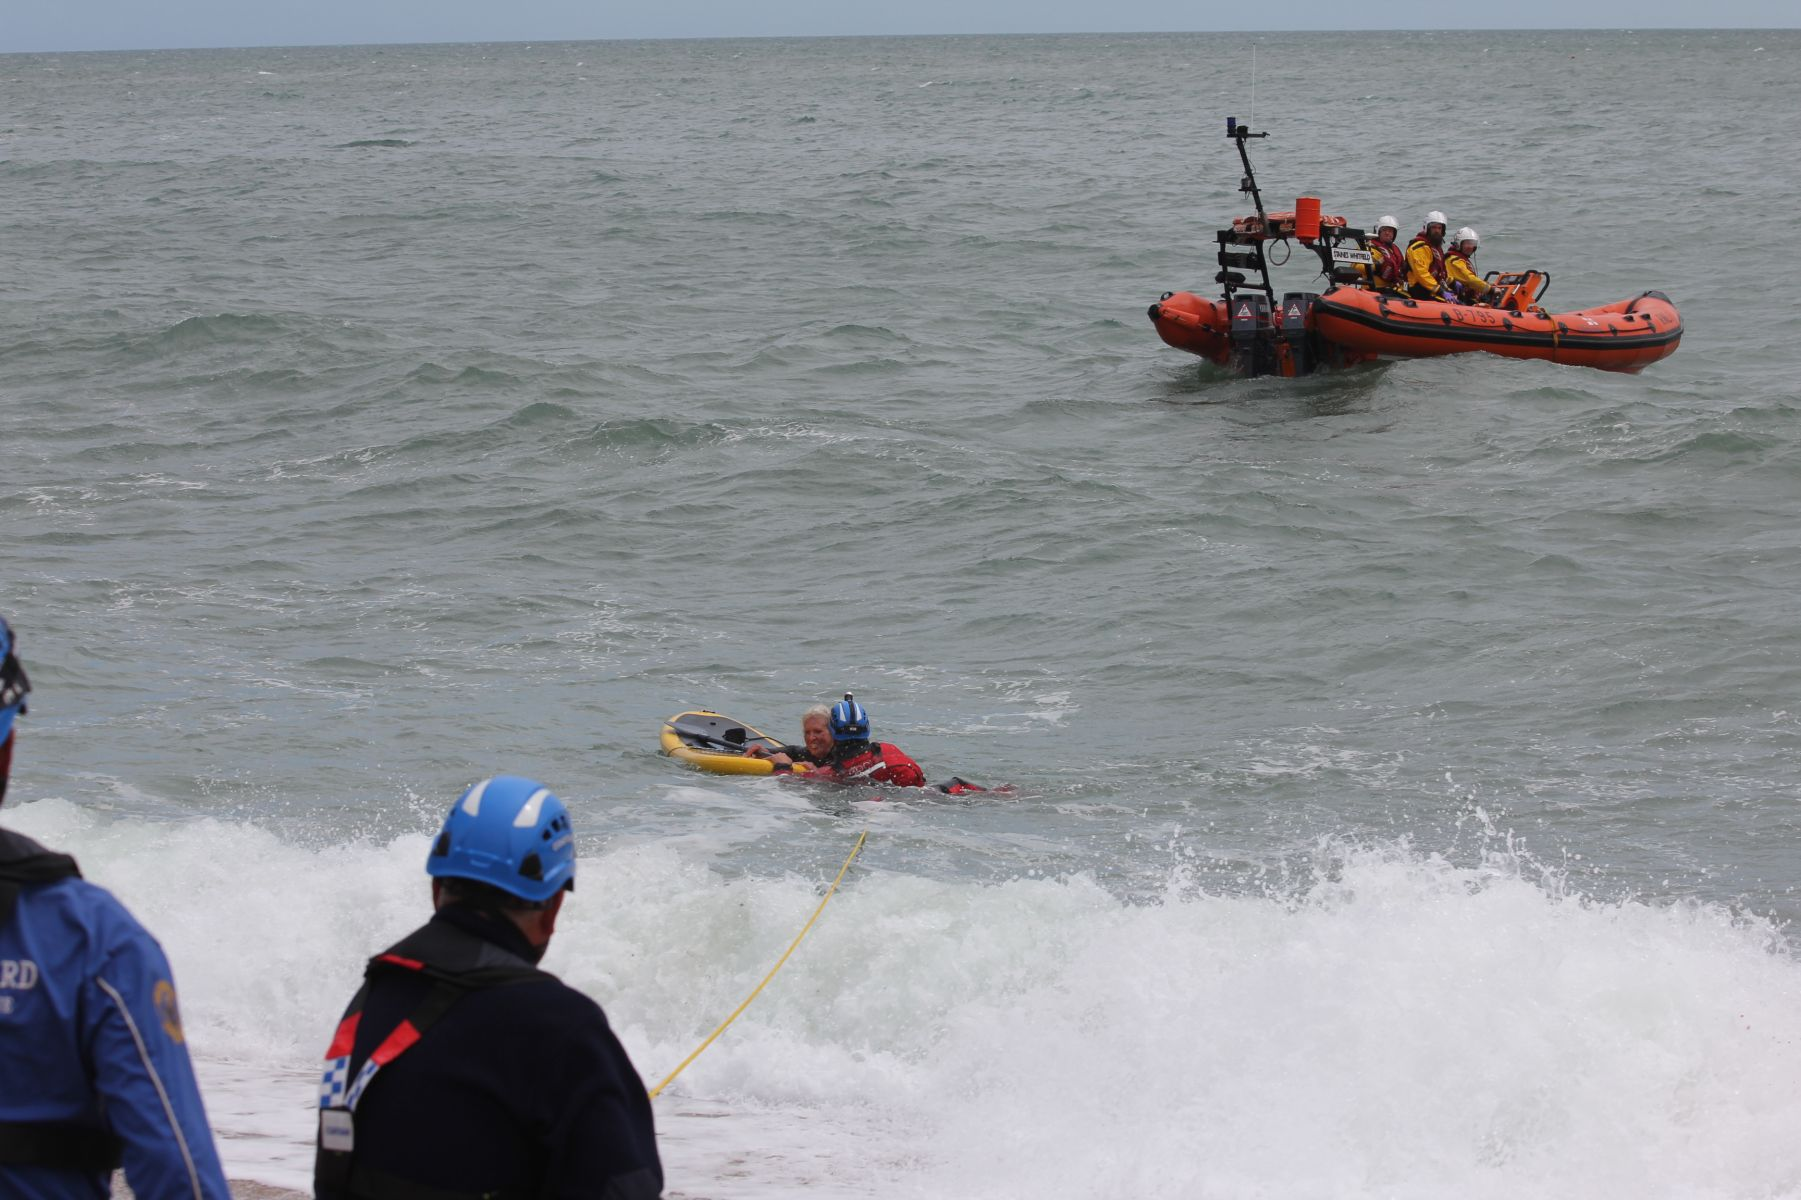 The paddleboarder was helped ashore by the Dartmouth Coastguard team.